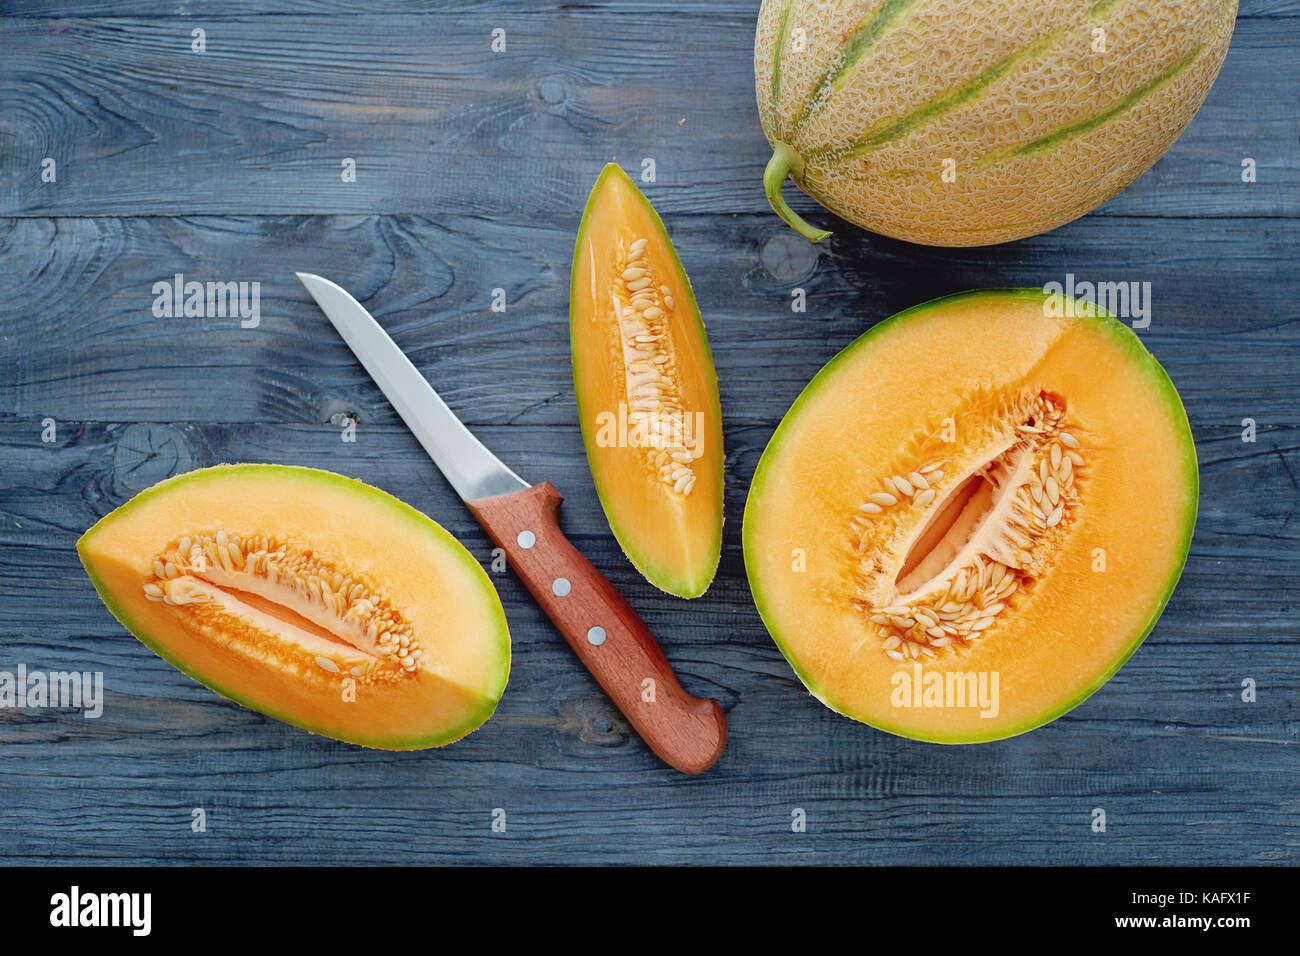 Fresh cantaloupe cut into pieces on wooden table. - Stock Image